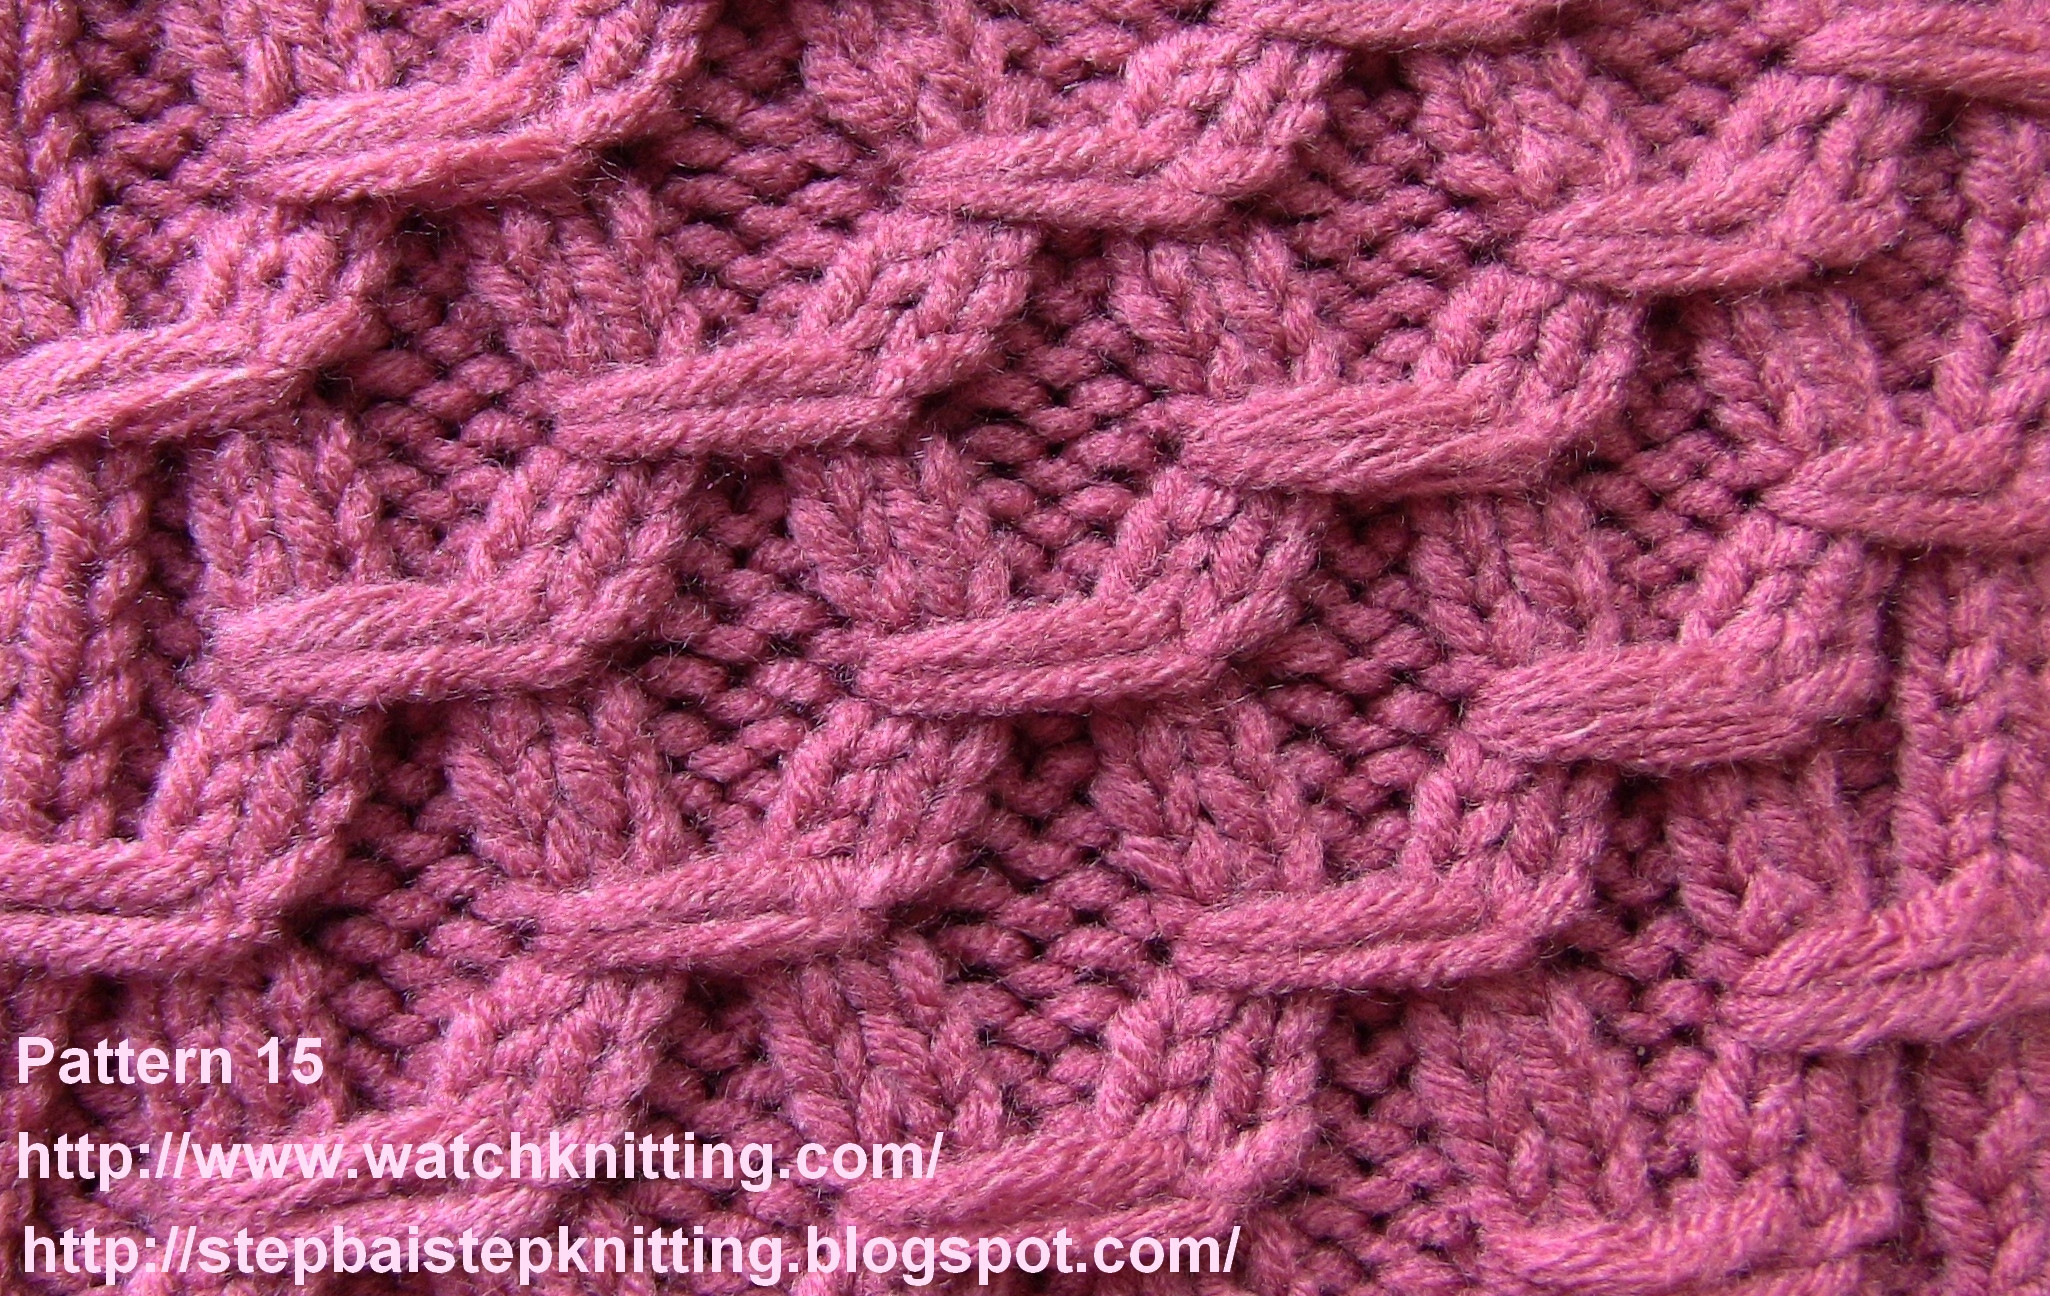 Luxury Patterns for Knitting Free Knitting and Crochet Patterns Of Marvelous 44 Ideas Free Knitting and Crochet Patterns